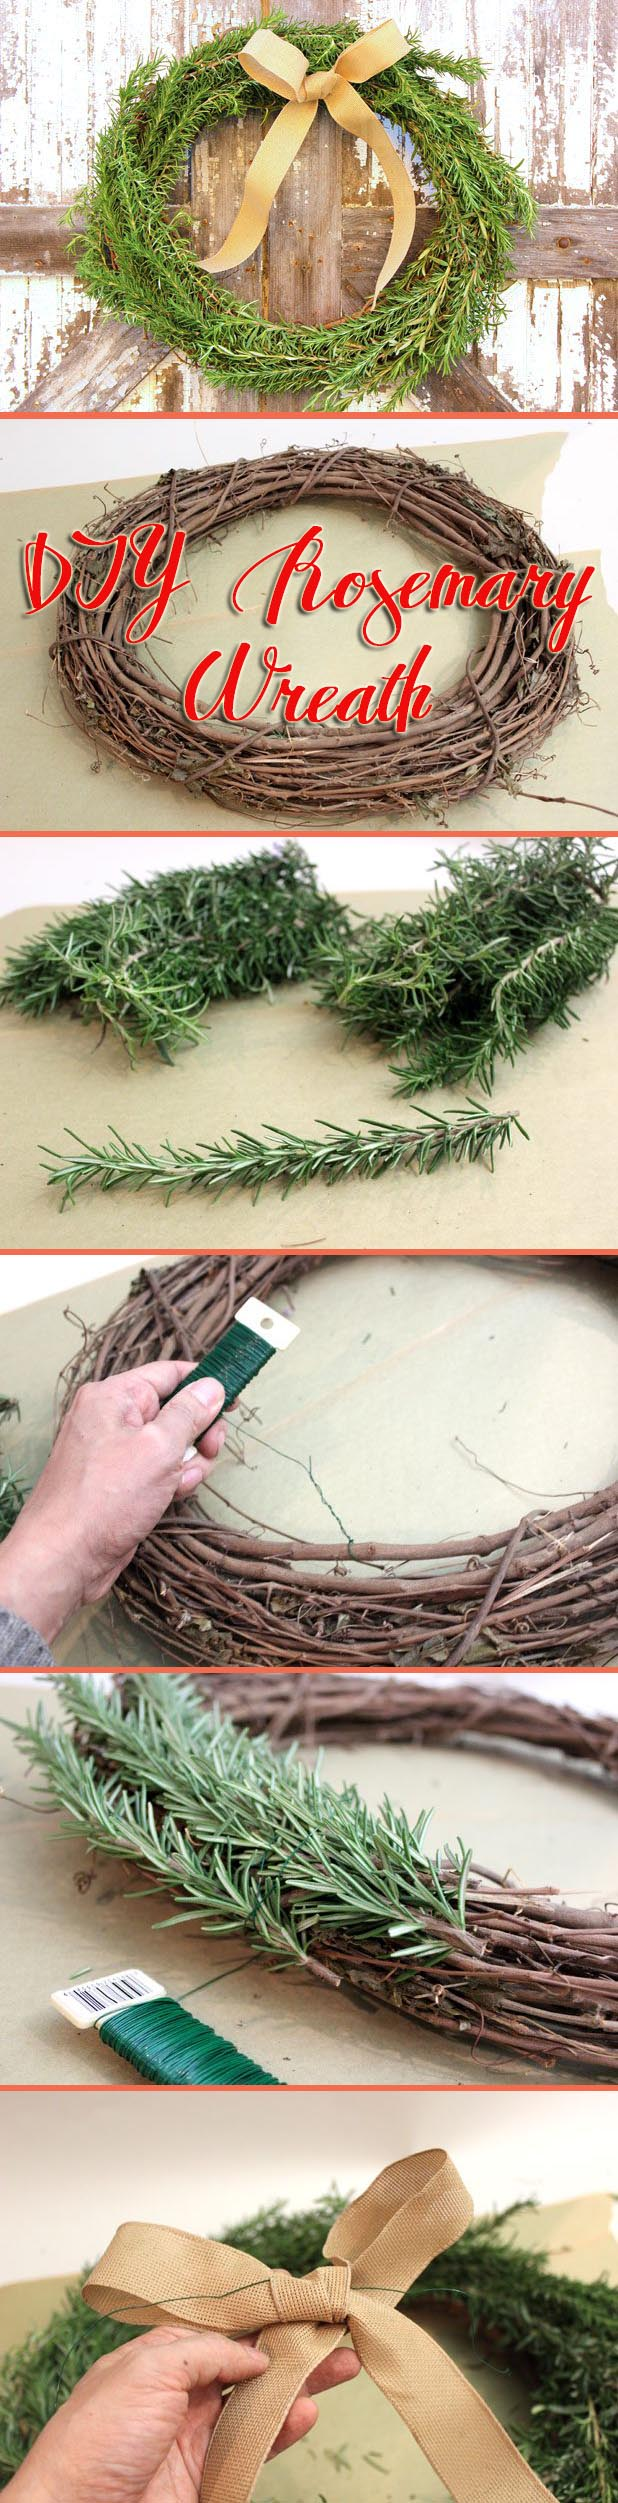 A DIY wreath that is as beautiful as it is fragrant! Fresh rosemary can fill your home with this stylish and easy to make wreath. How to instructions here: http://www.ehow.com/how_7699585_make-wreath-rosemary.html?utm_source=pinterest.com&utm_medium=referral&utm_content=inline&utm_campaign=fanpage